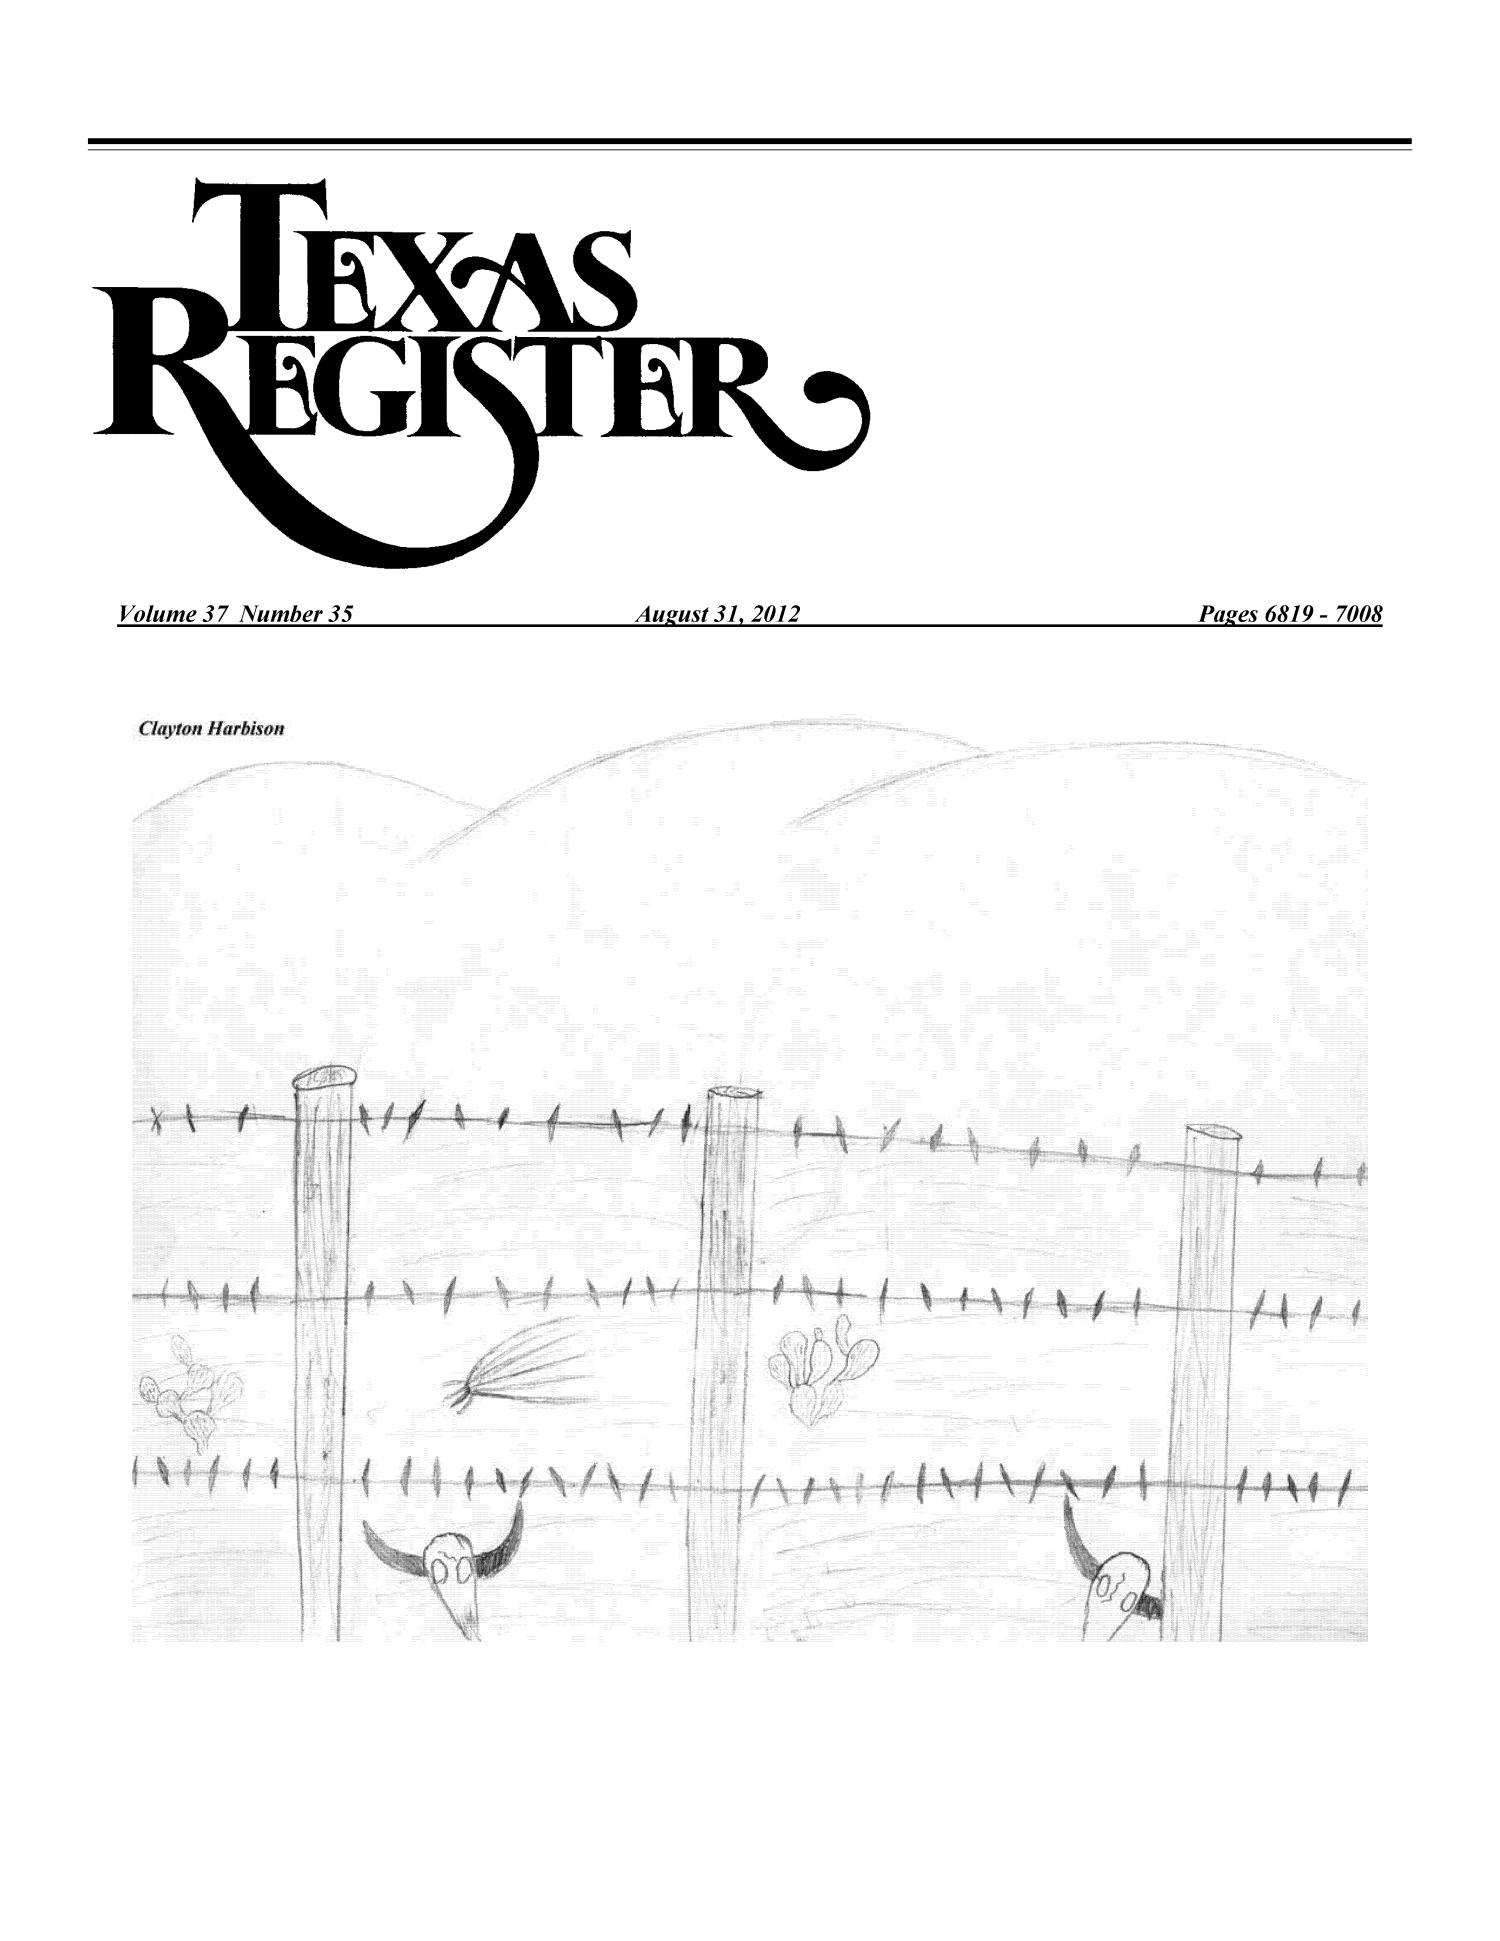 Texas Register, Volume 37, Number 35, Pages 6819-7008, August 31, 2012                                                                                                      Title Page